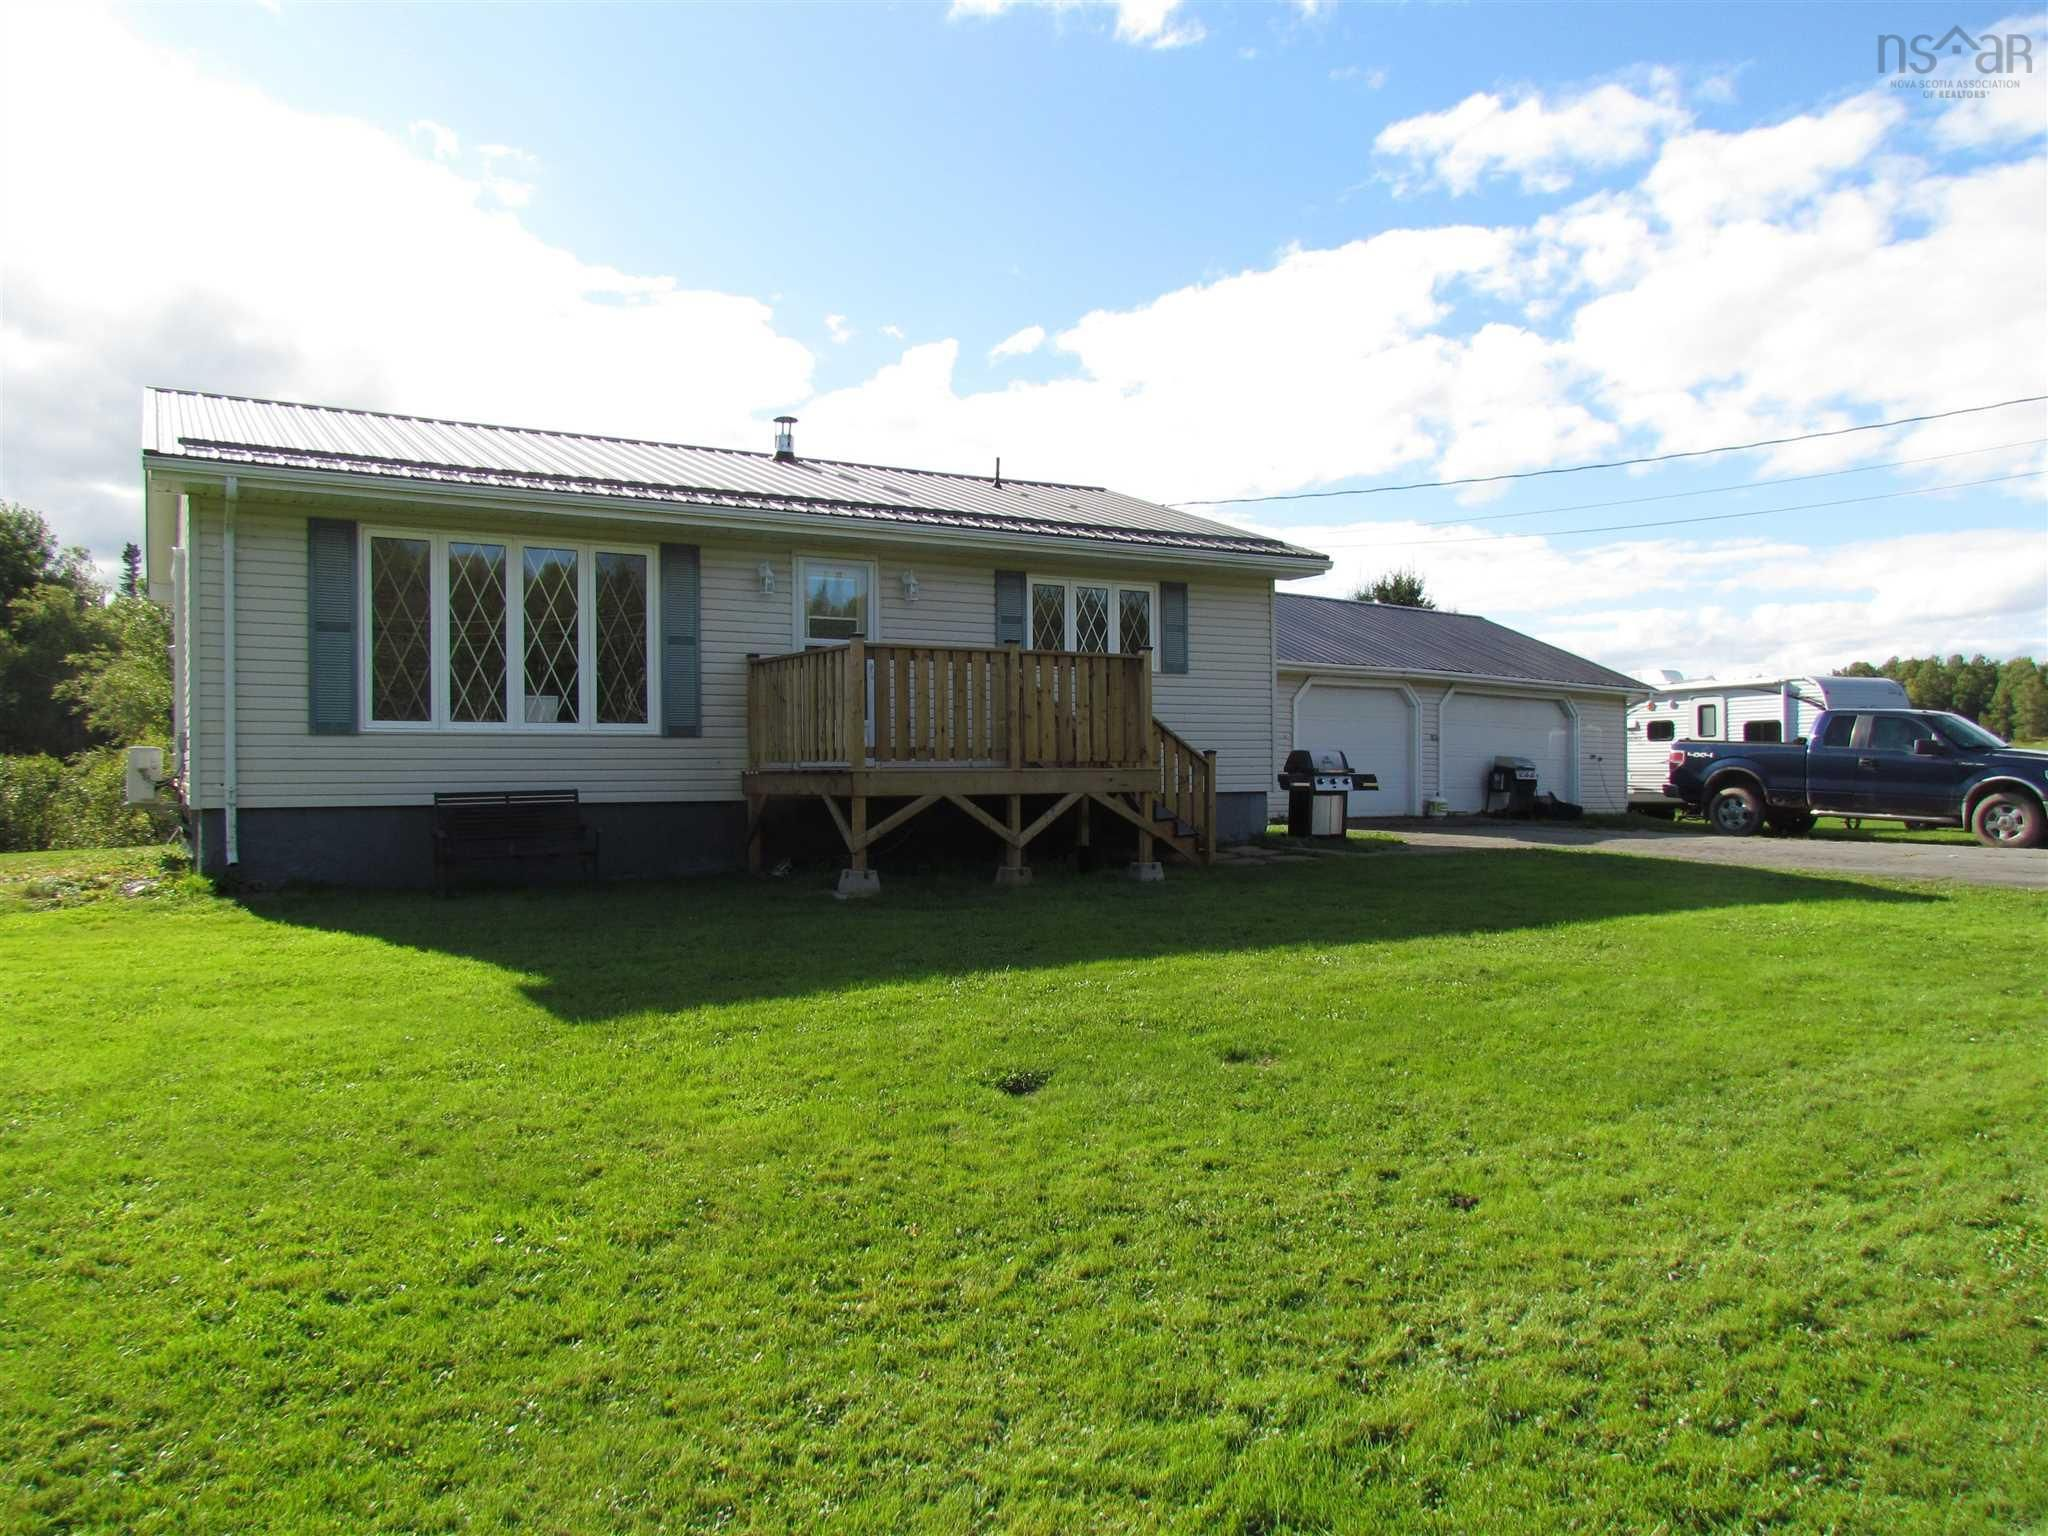 Main Photo: 8013 354 Highway in Gormanville: 105-East Hants/Colchester West Residential for sale (Halifax-Dartmouth)  : MLS®# 202123817